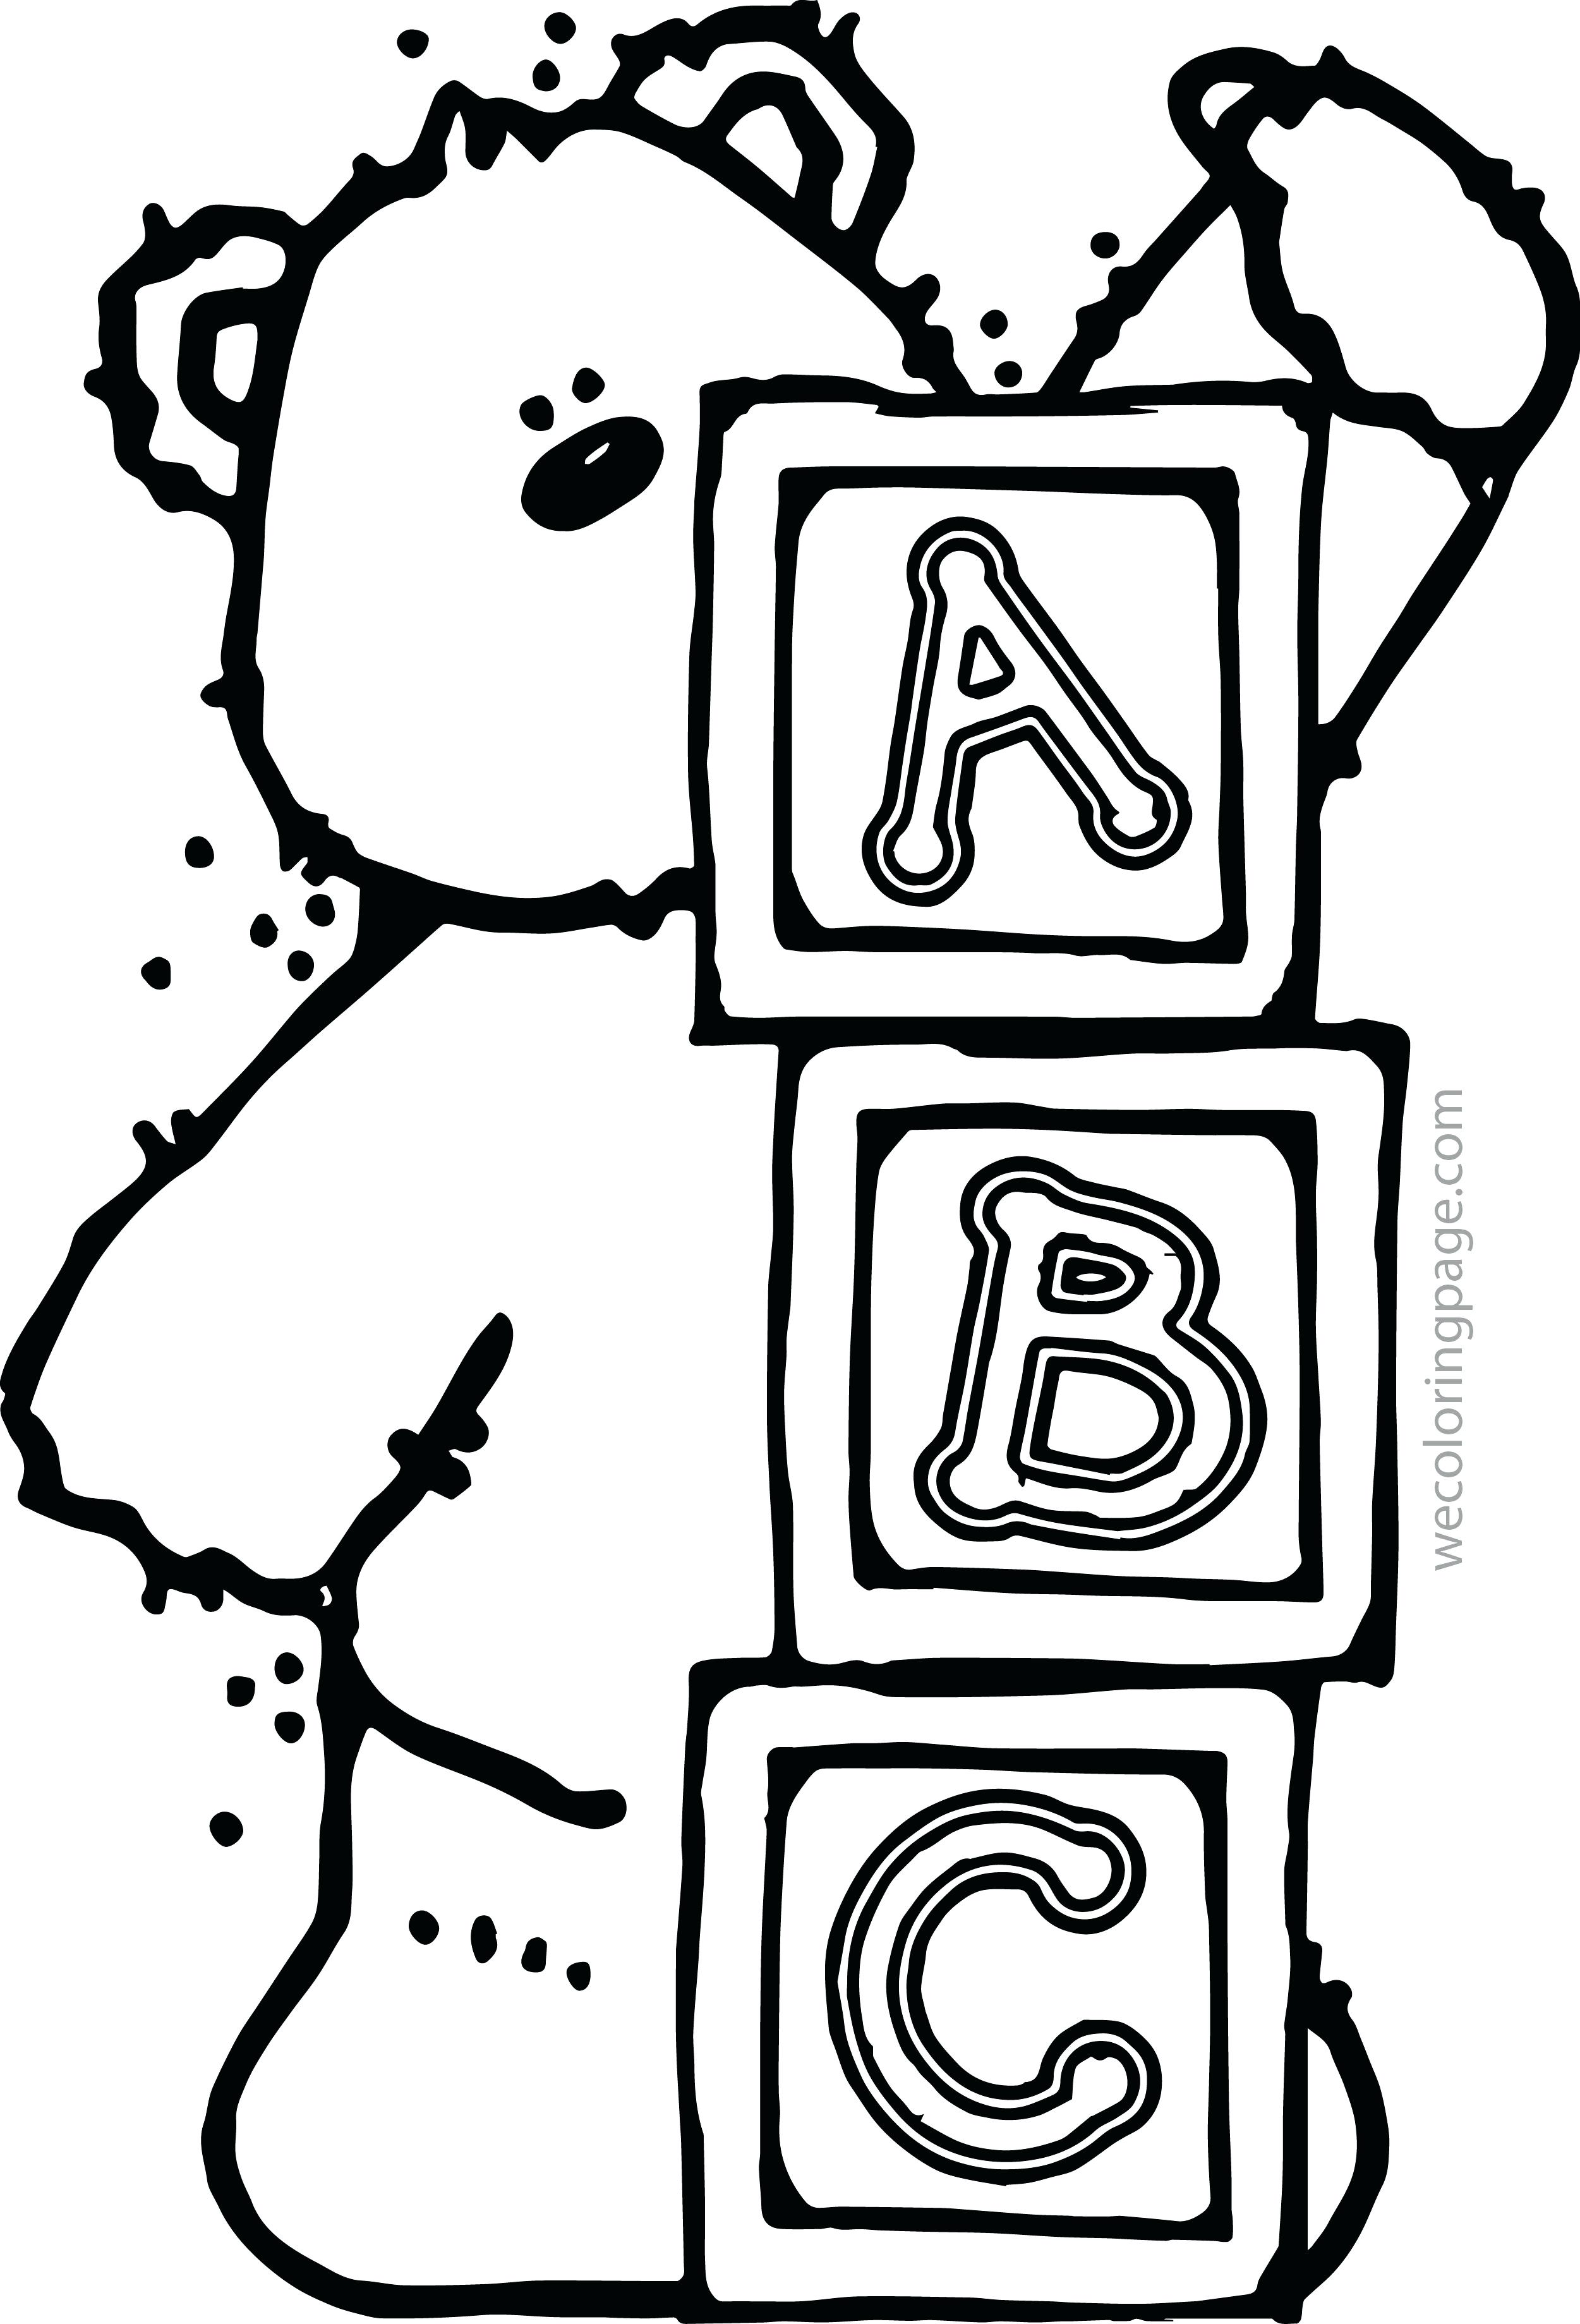 2501x3678 Coloring Pages S For Strawberry Abc Books Preschoolers Sheets